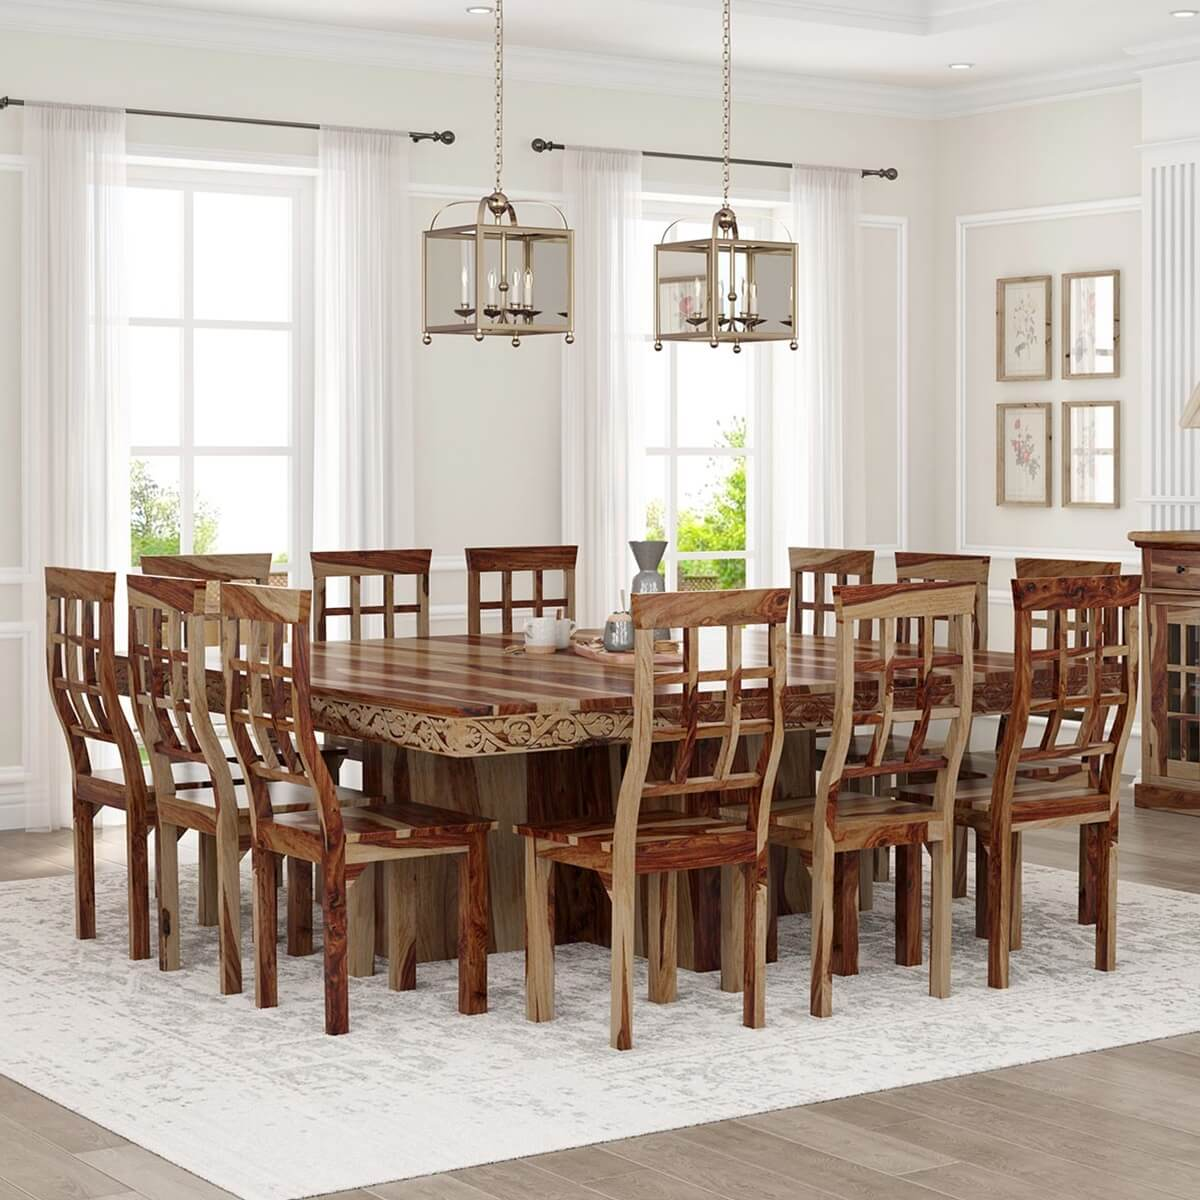 dallas ranch square pedestal large dining table chair set kemper square dining room set ivory cramco furniturepick